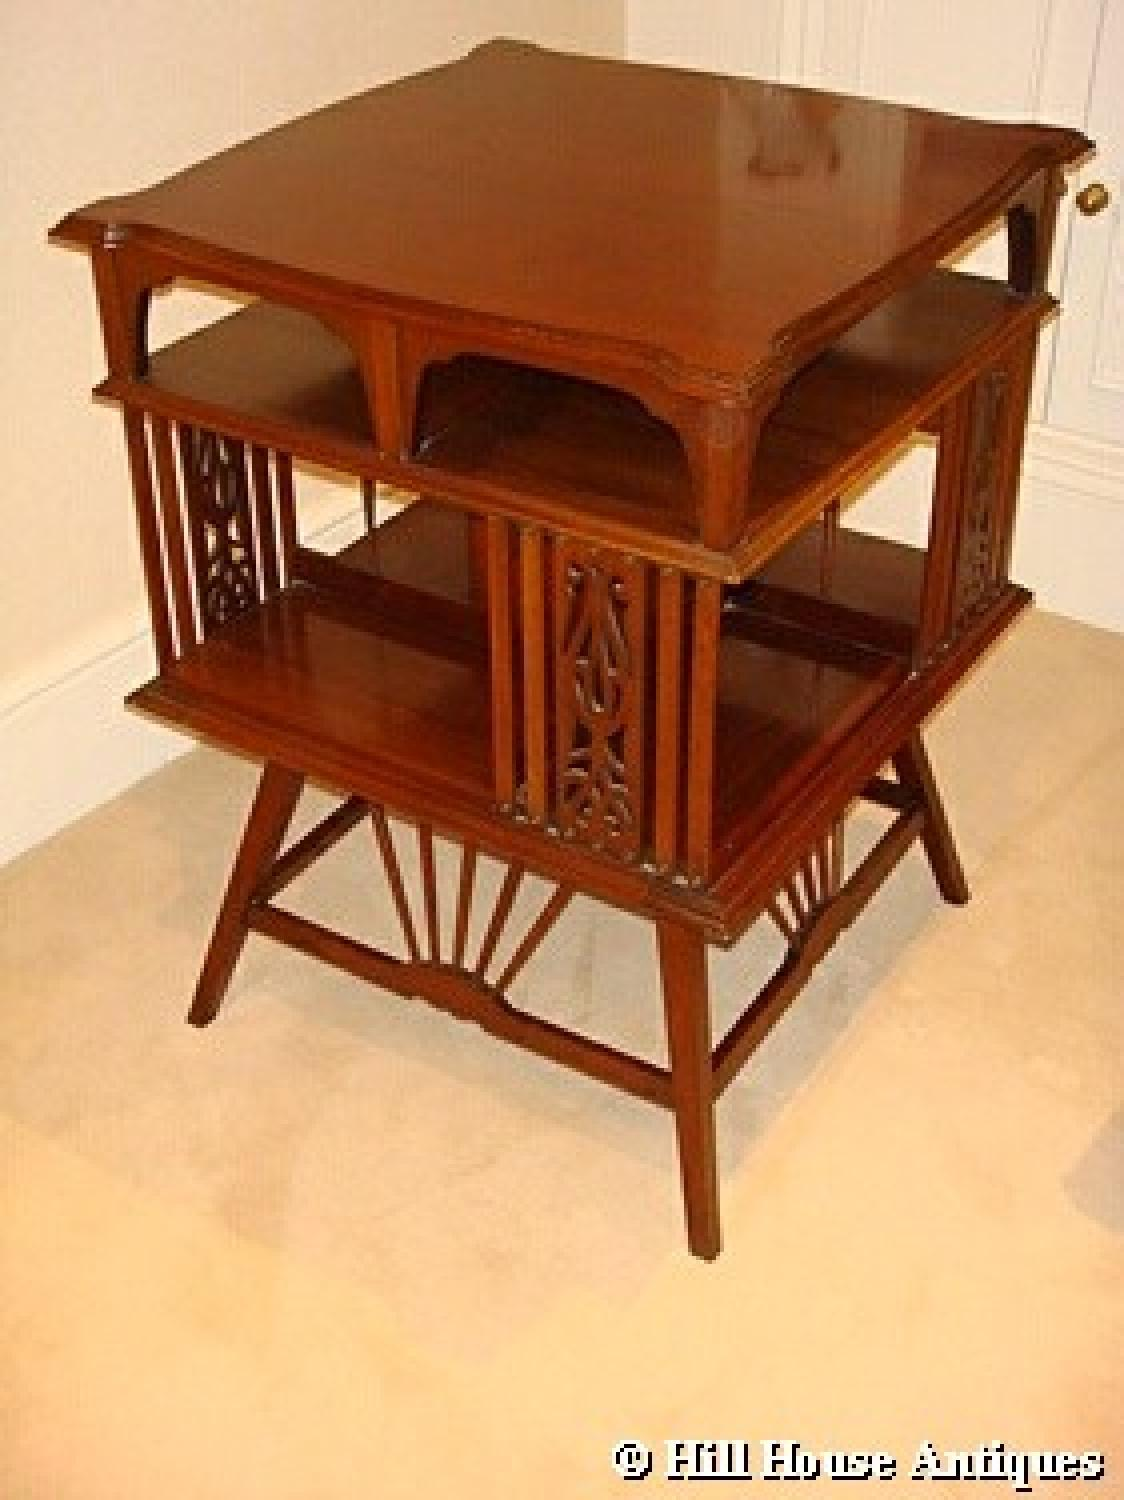 Shapland & Petter revolving table bookcase